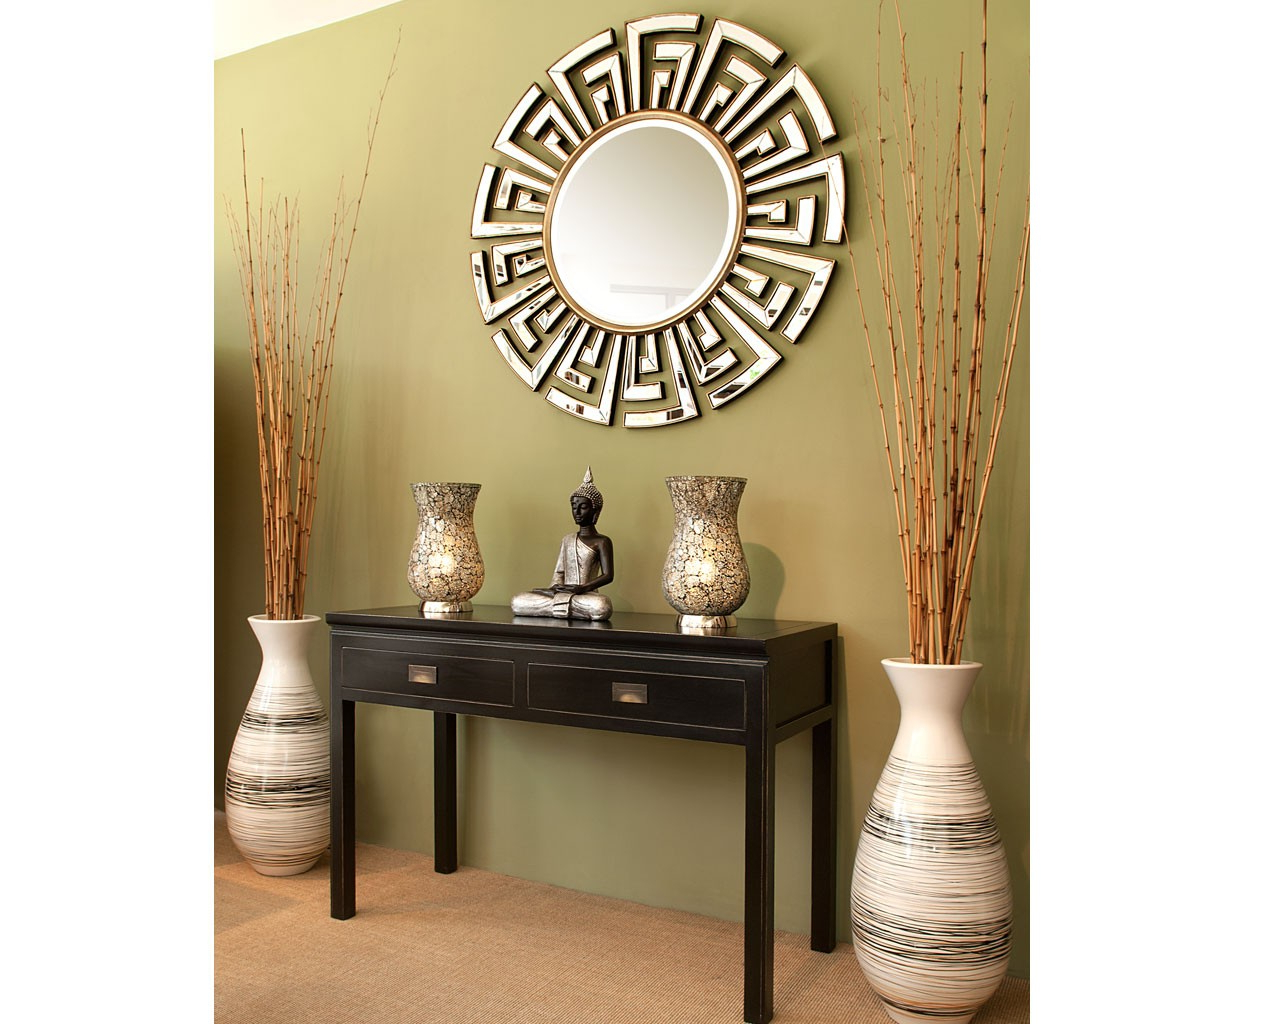 Popular Contemporary Round Mirrors 36 X 42 Mirror Modern Decoration Italian With Ethnic Wall Mirrors (View 15 of 20)